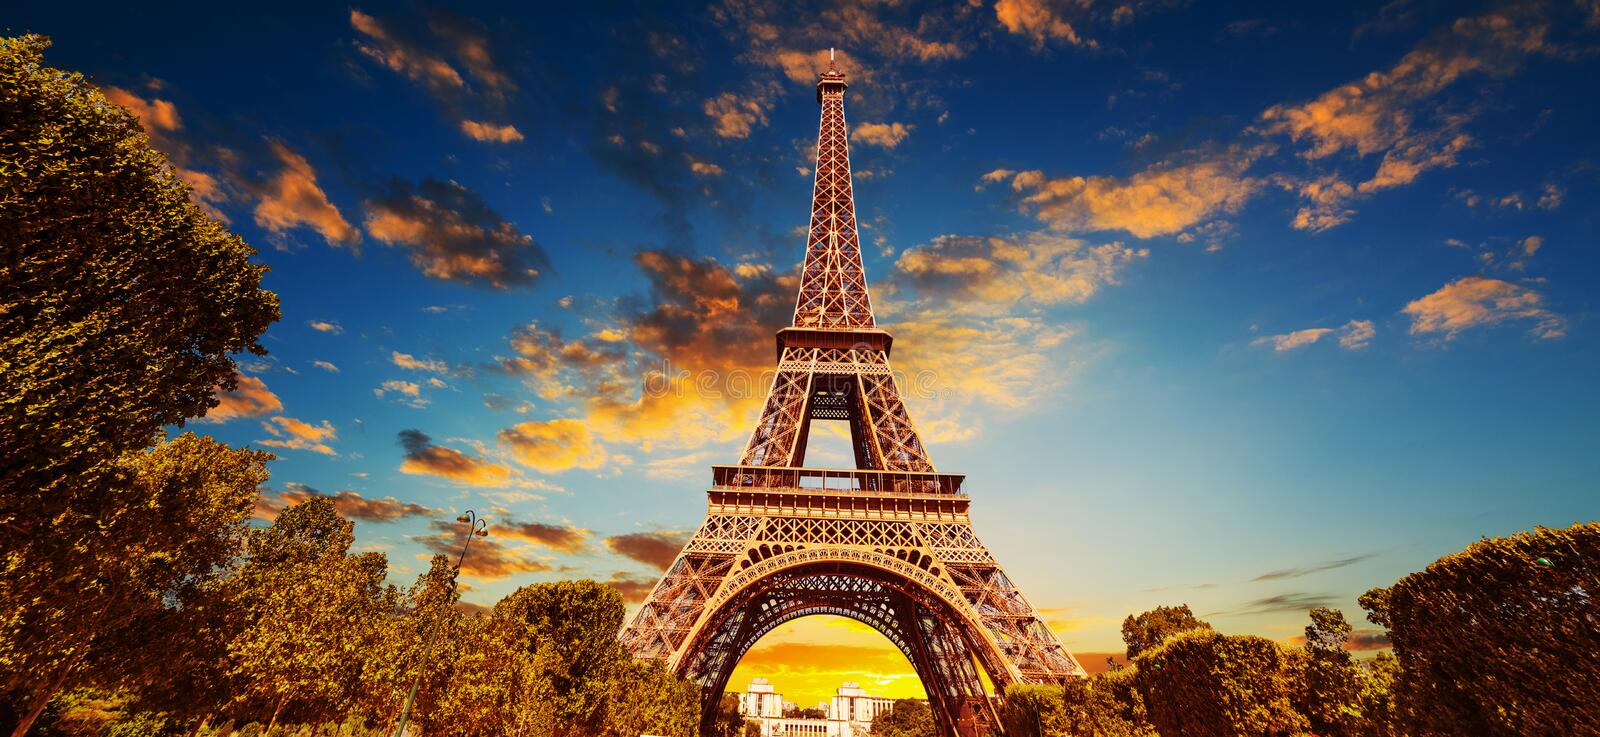 World famous Eiffel tower under a colorful sky at sunset royalty free stock image